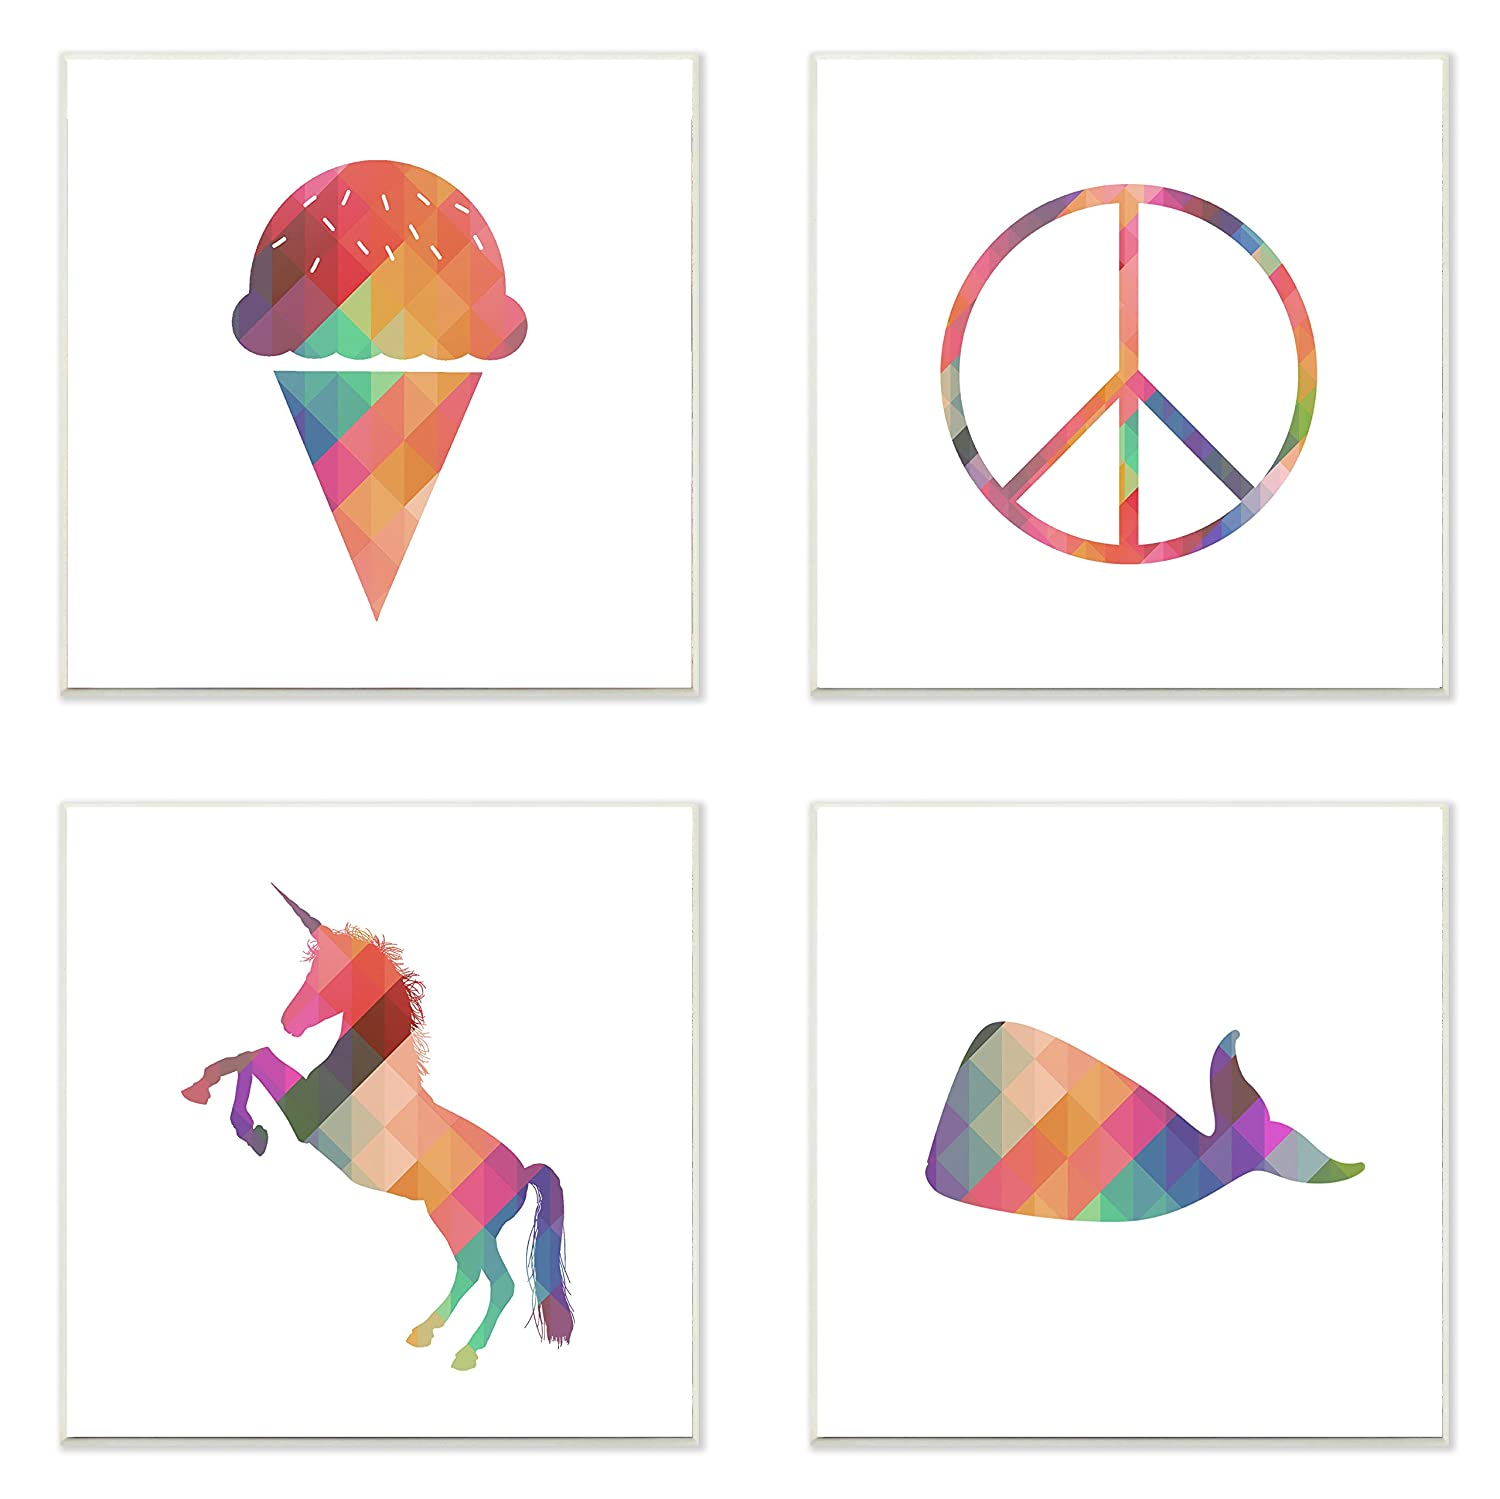 12 x 0.5 x 12 Stupell Home D/écor Geometric Rainbown Silhouettes Ice Cream Peace Unicorn Whale 3pc Wall Plaque Art Set Proudly Made in USA Stupell Industries brp-1835/_wd/_4pc/_12x12